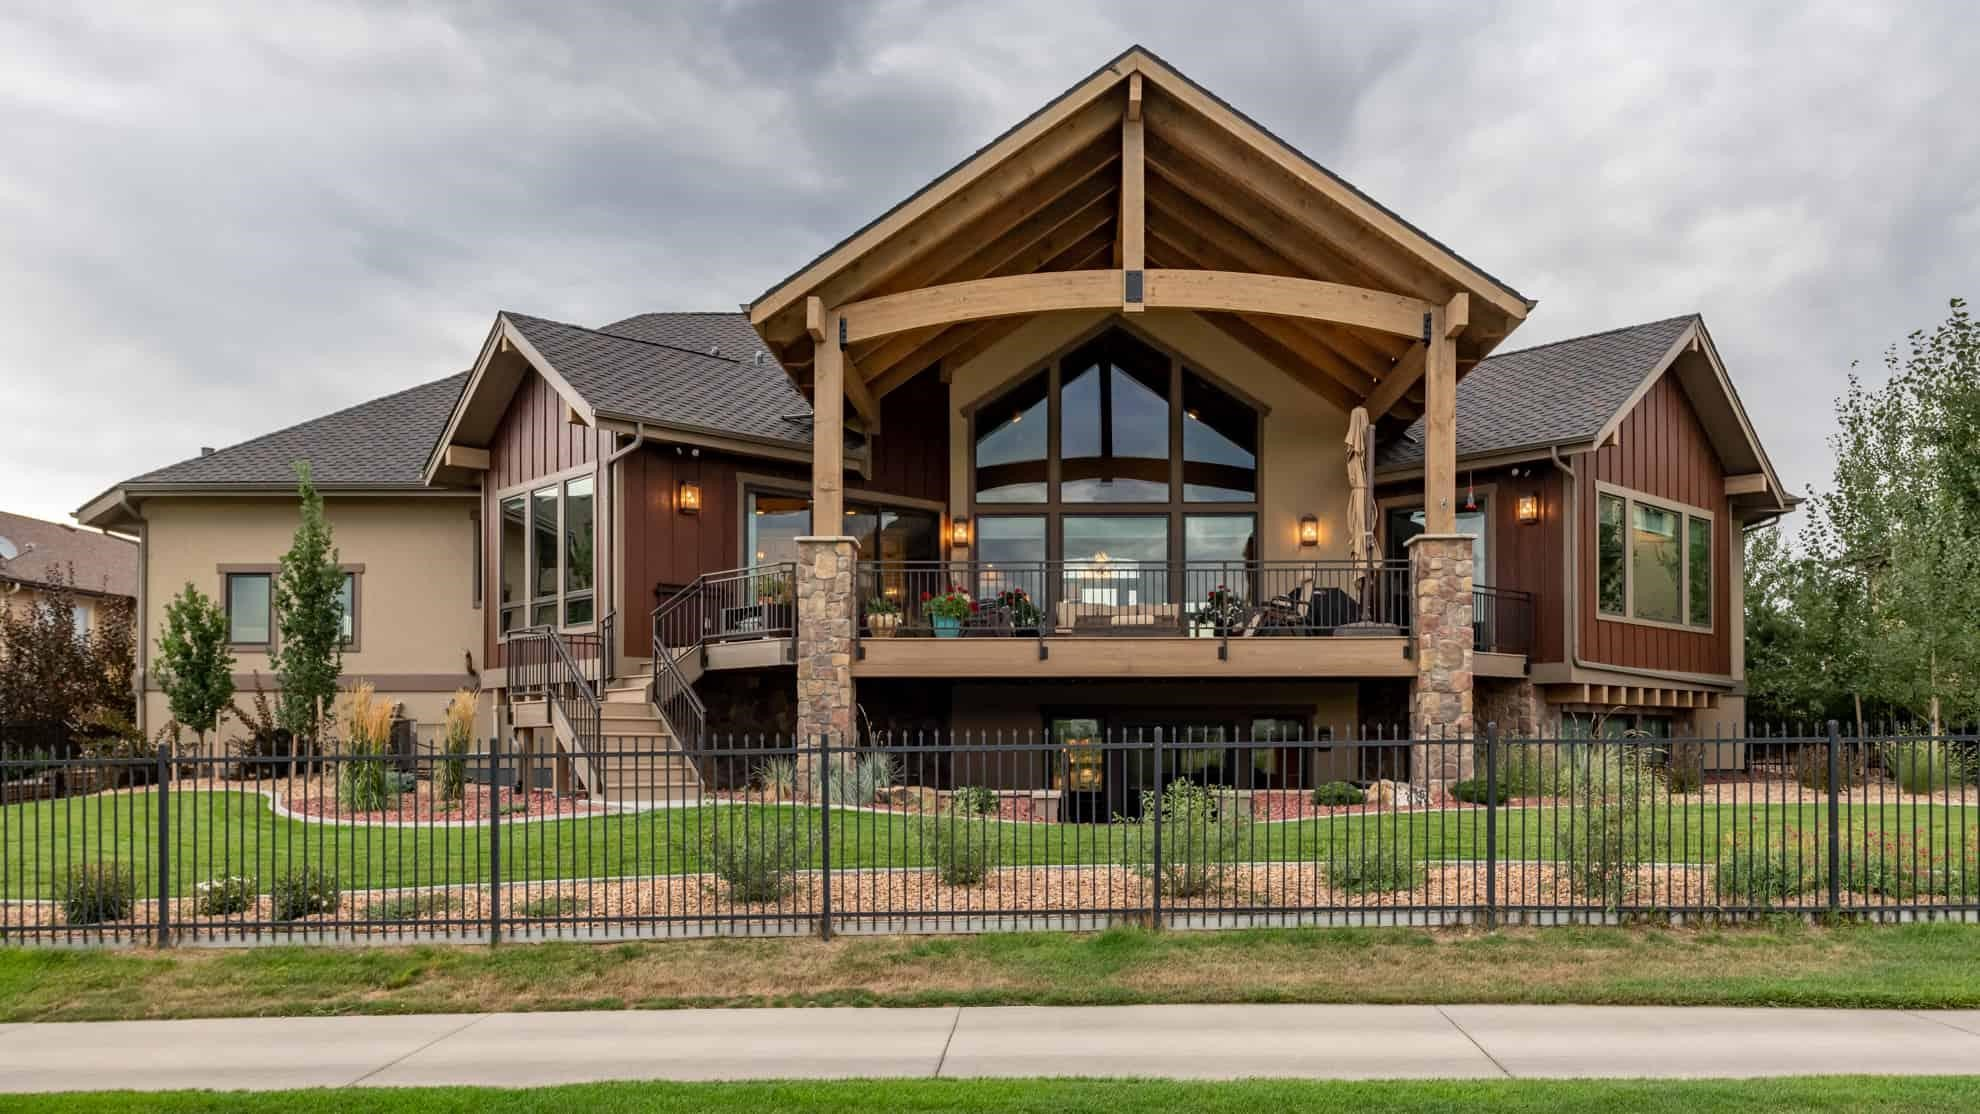 Rear of a single-story Ranch home showing the rustic influence on its design